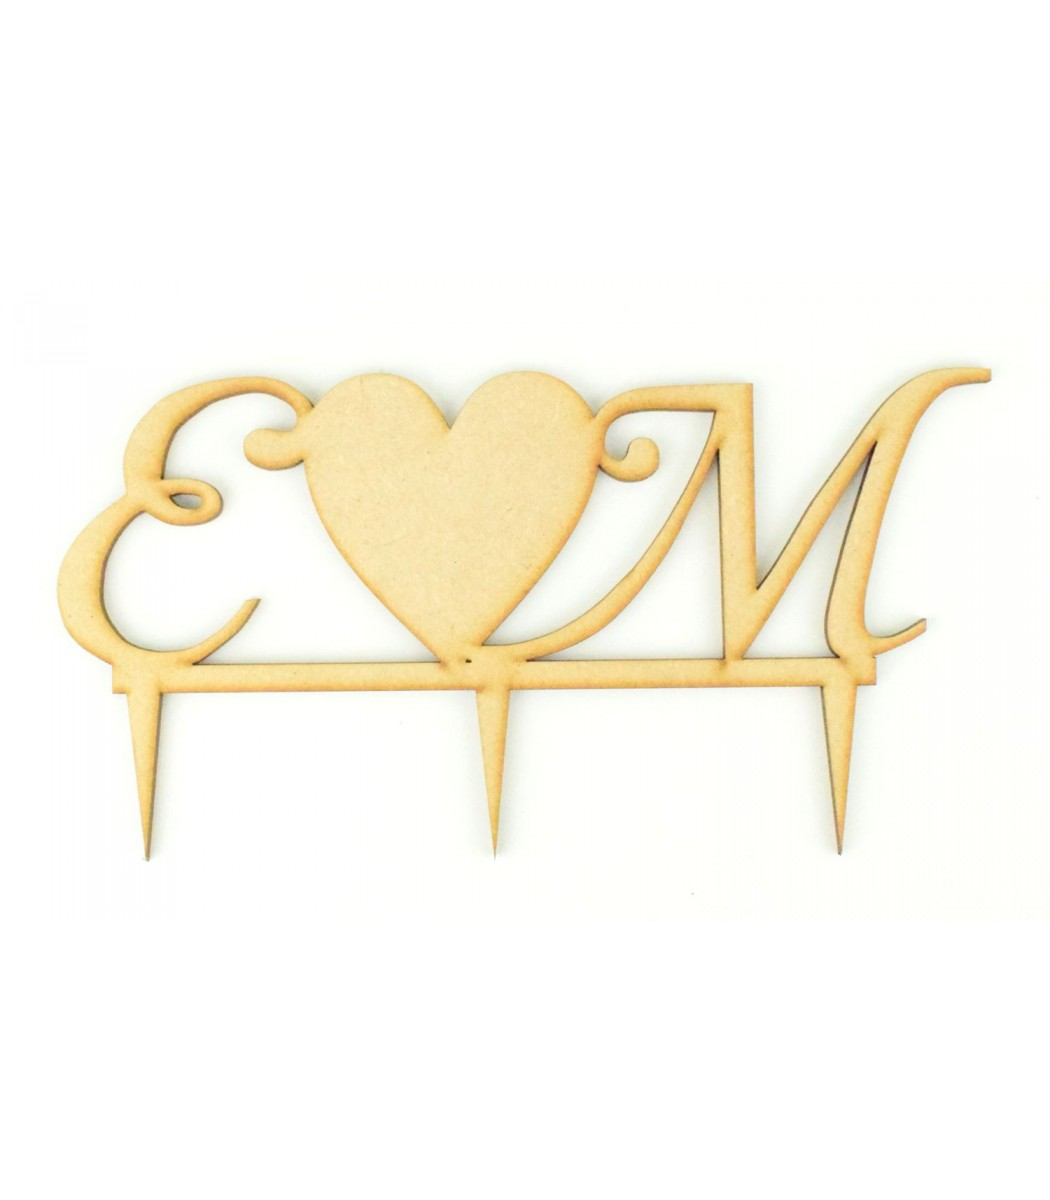 The leading supplier of cake toppers